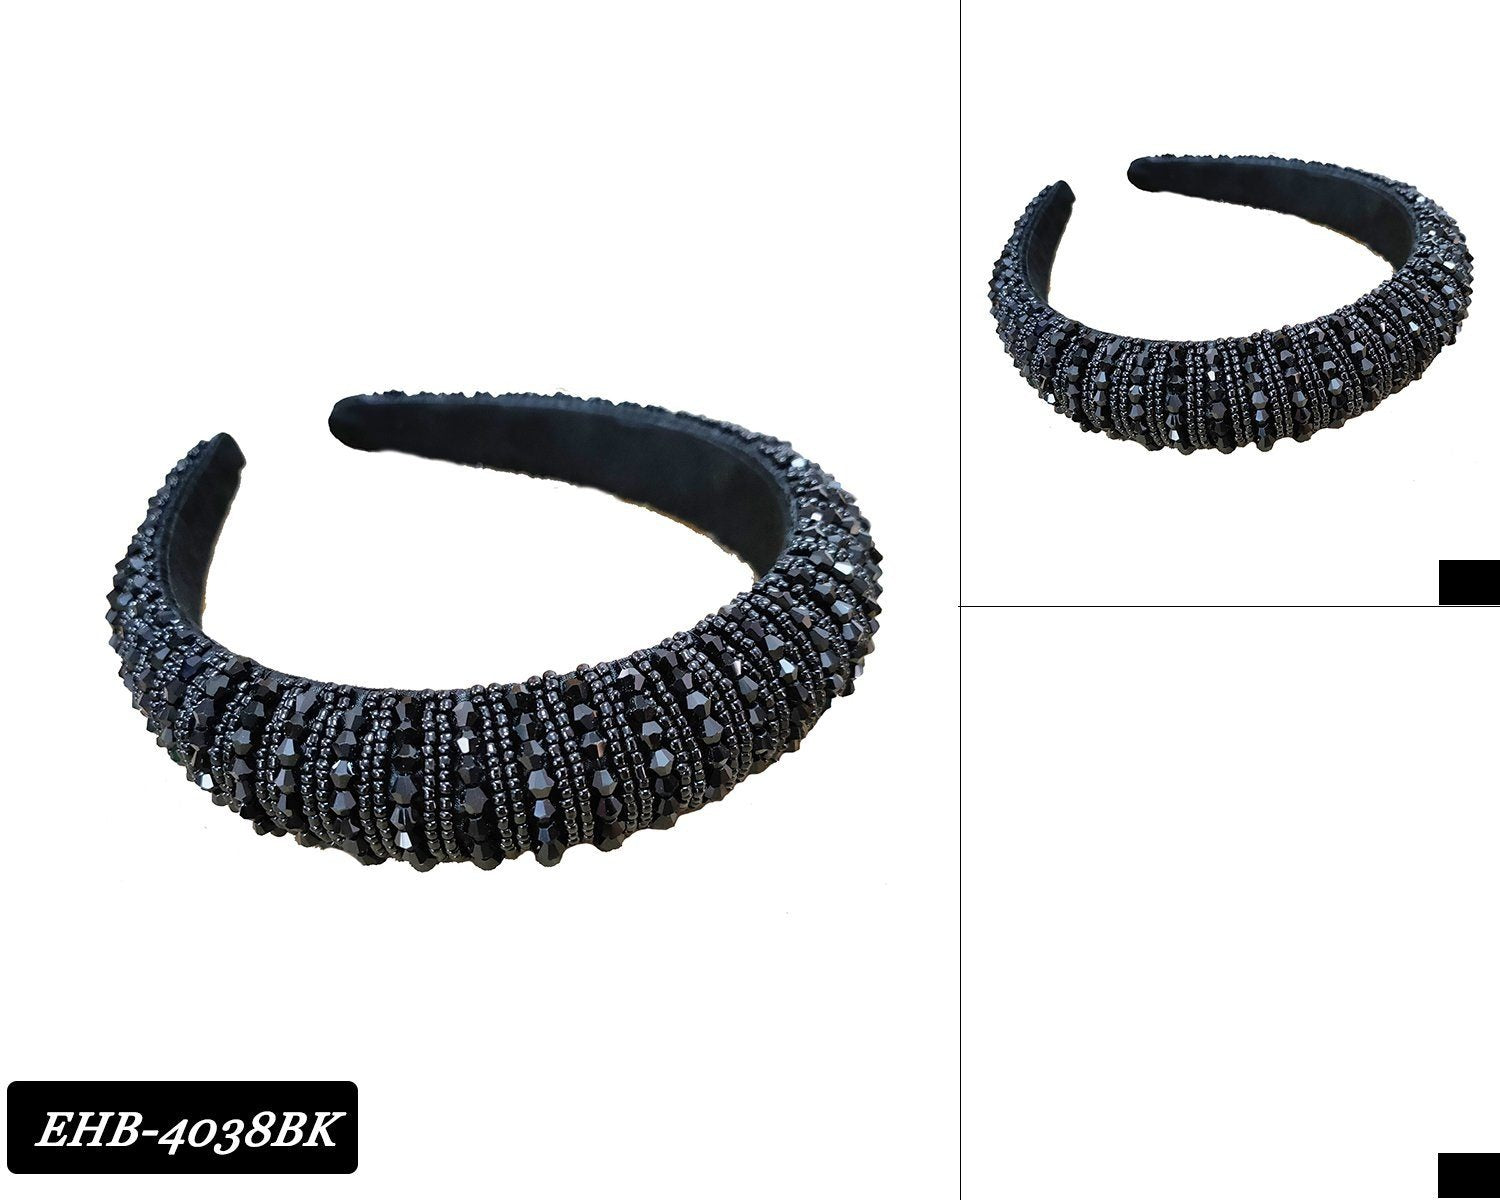 wholesale-fashion-headband-rhinestone-ehb4038BK